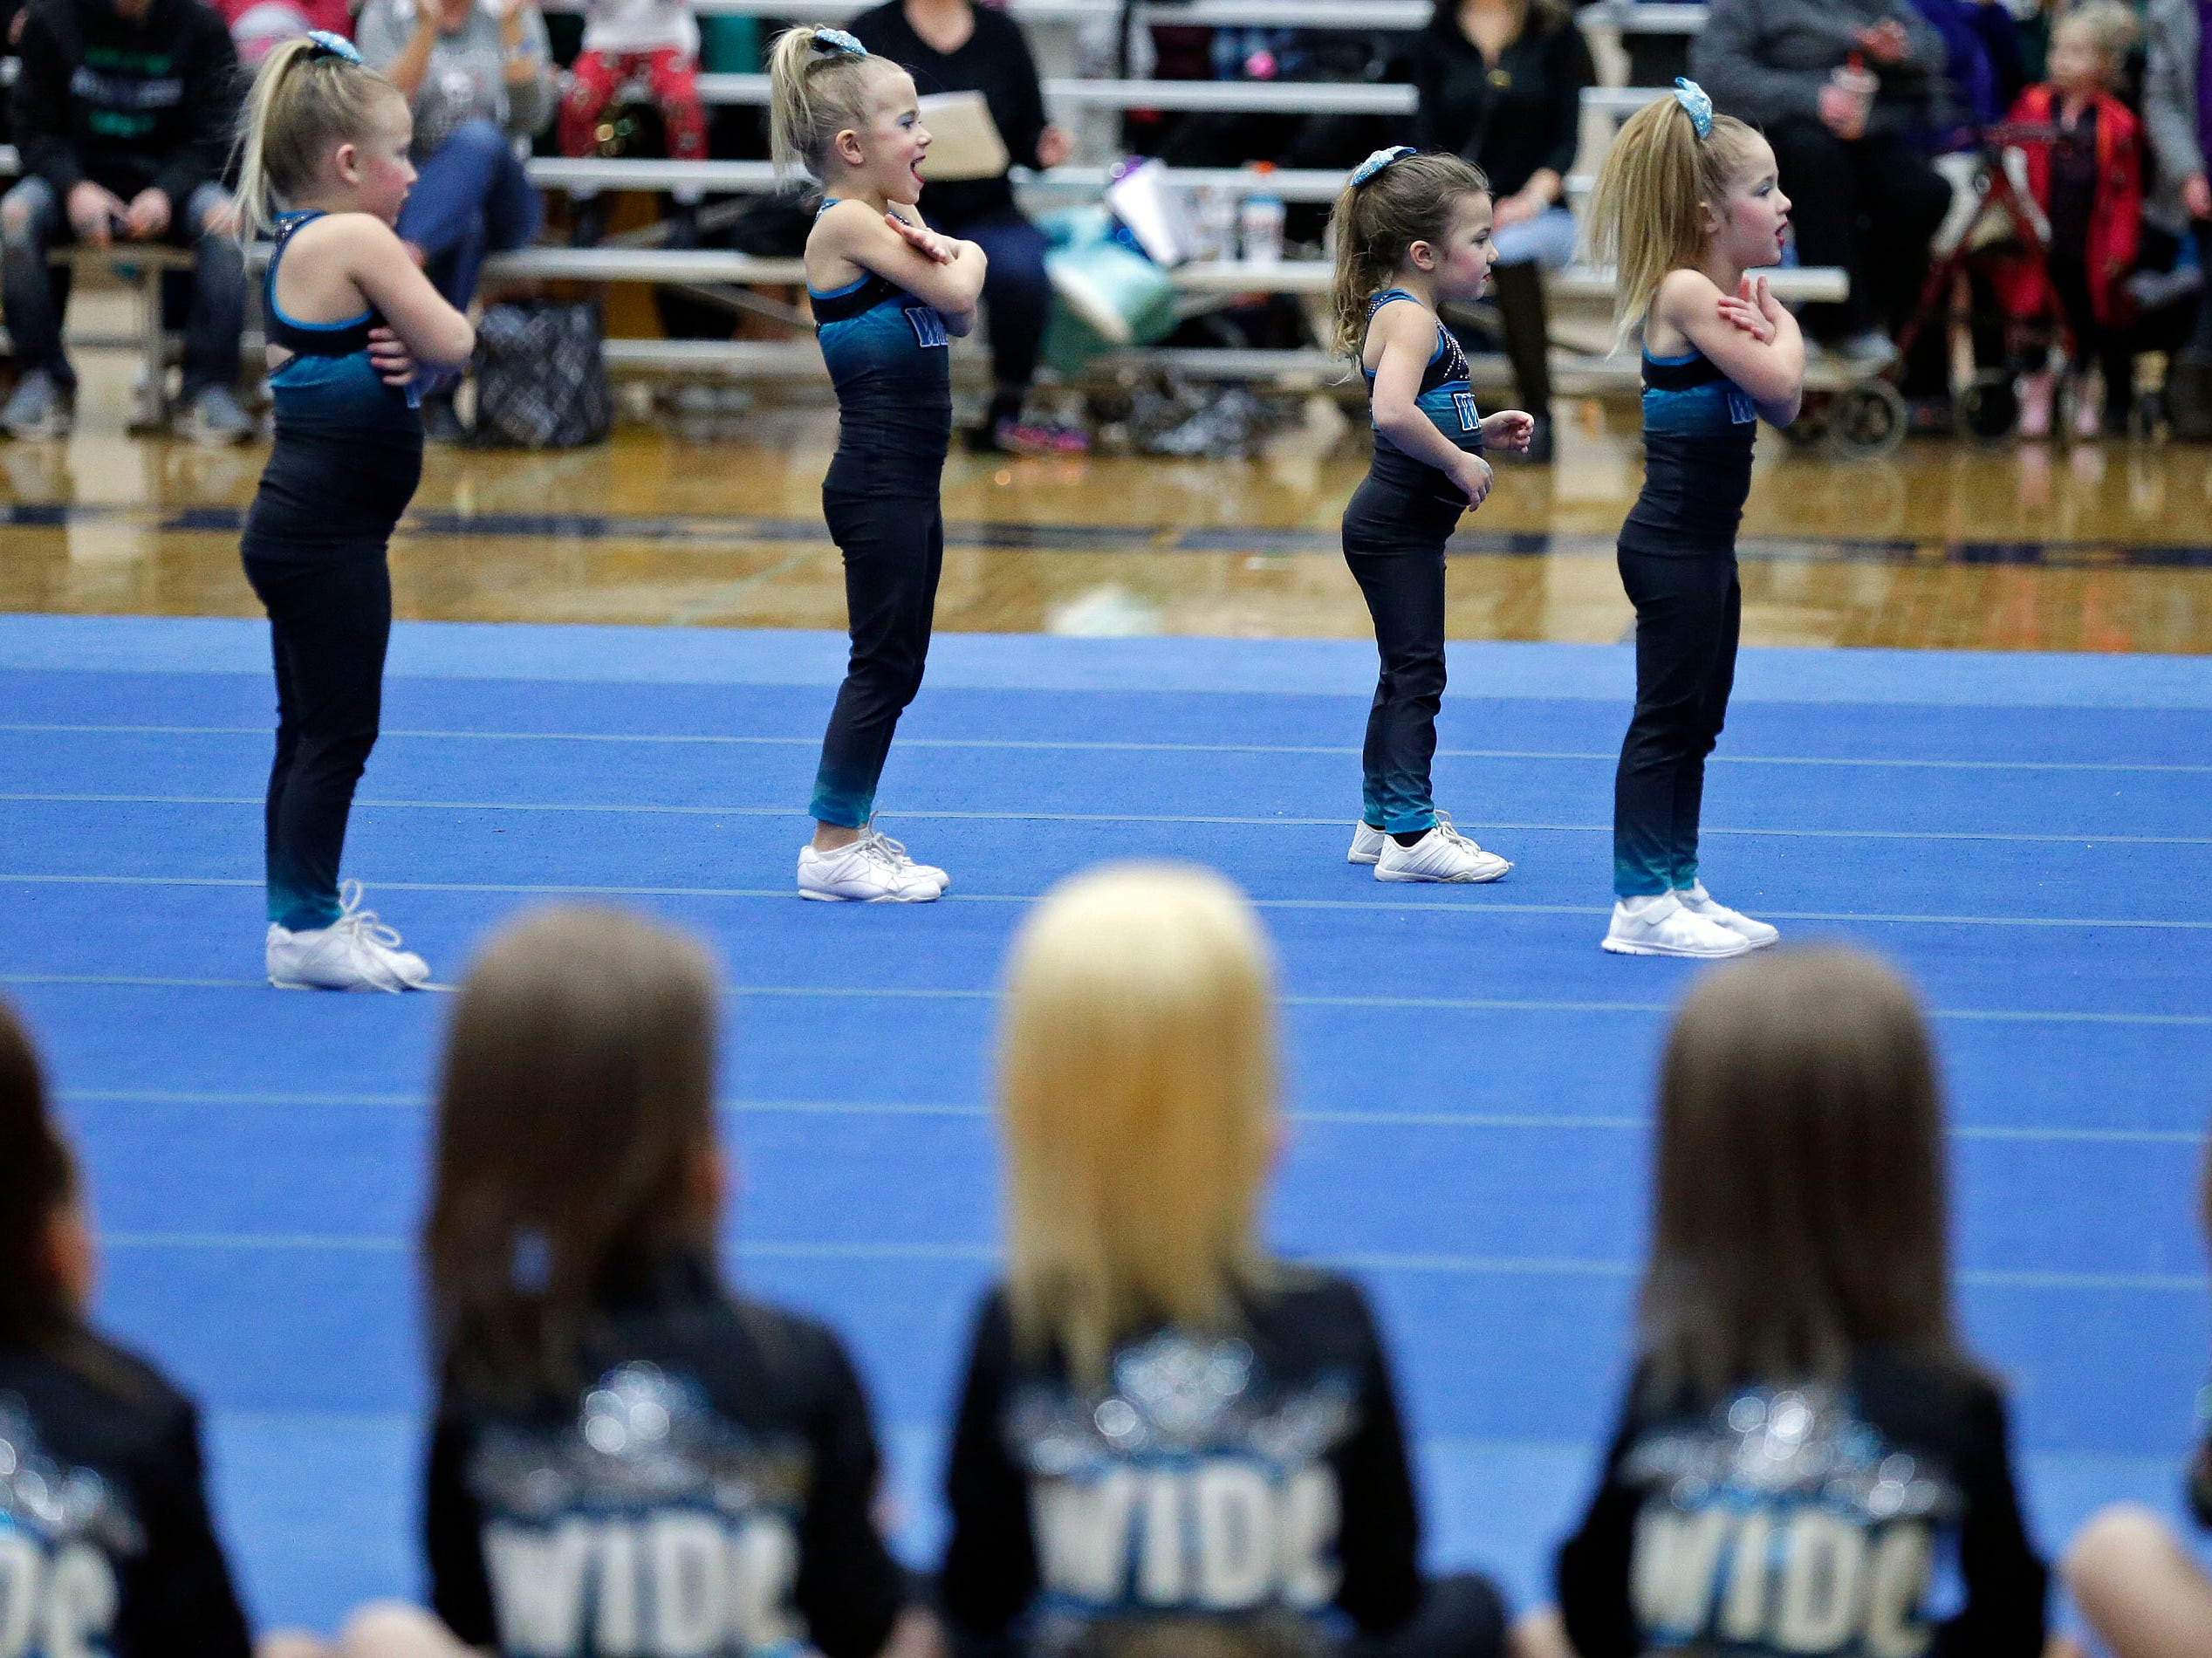 A WIDC teams competes while other WIDC members cheer them on as the Lightning Bolt Explosion Cheer and Dance competition takes place Saturday, January 5, 2019, at Appleton North High School in Appleton, Wis.